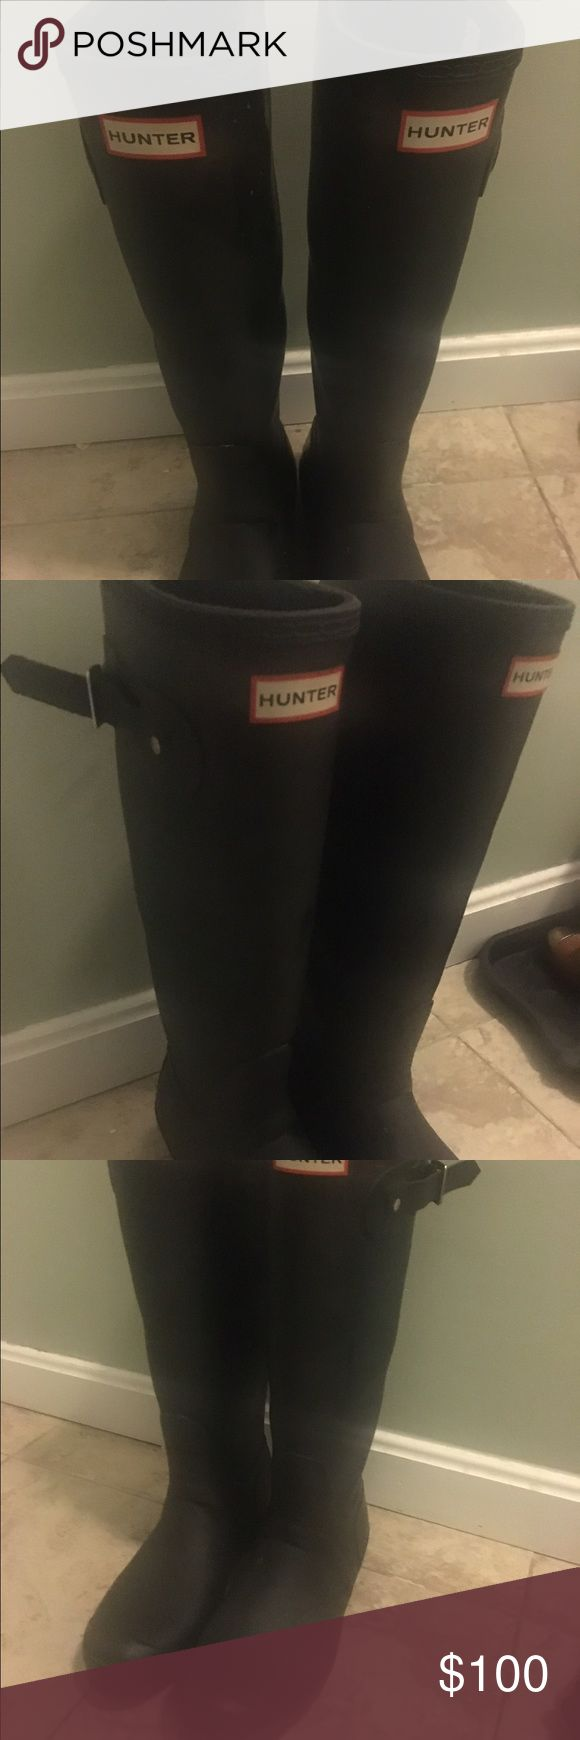 Hunter boots size 9 Gently worn Navy hunter boots Hunter Boots Shoes Winter & Rain Boots